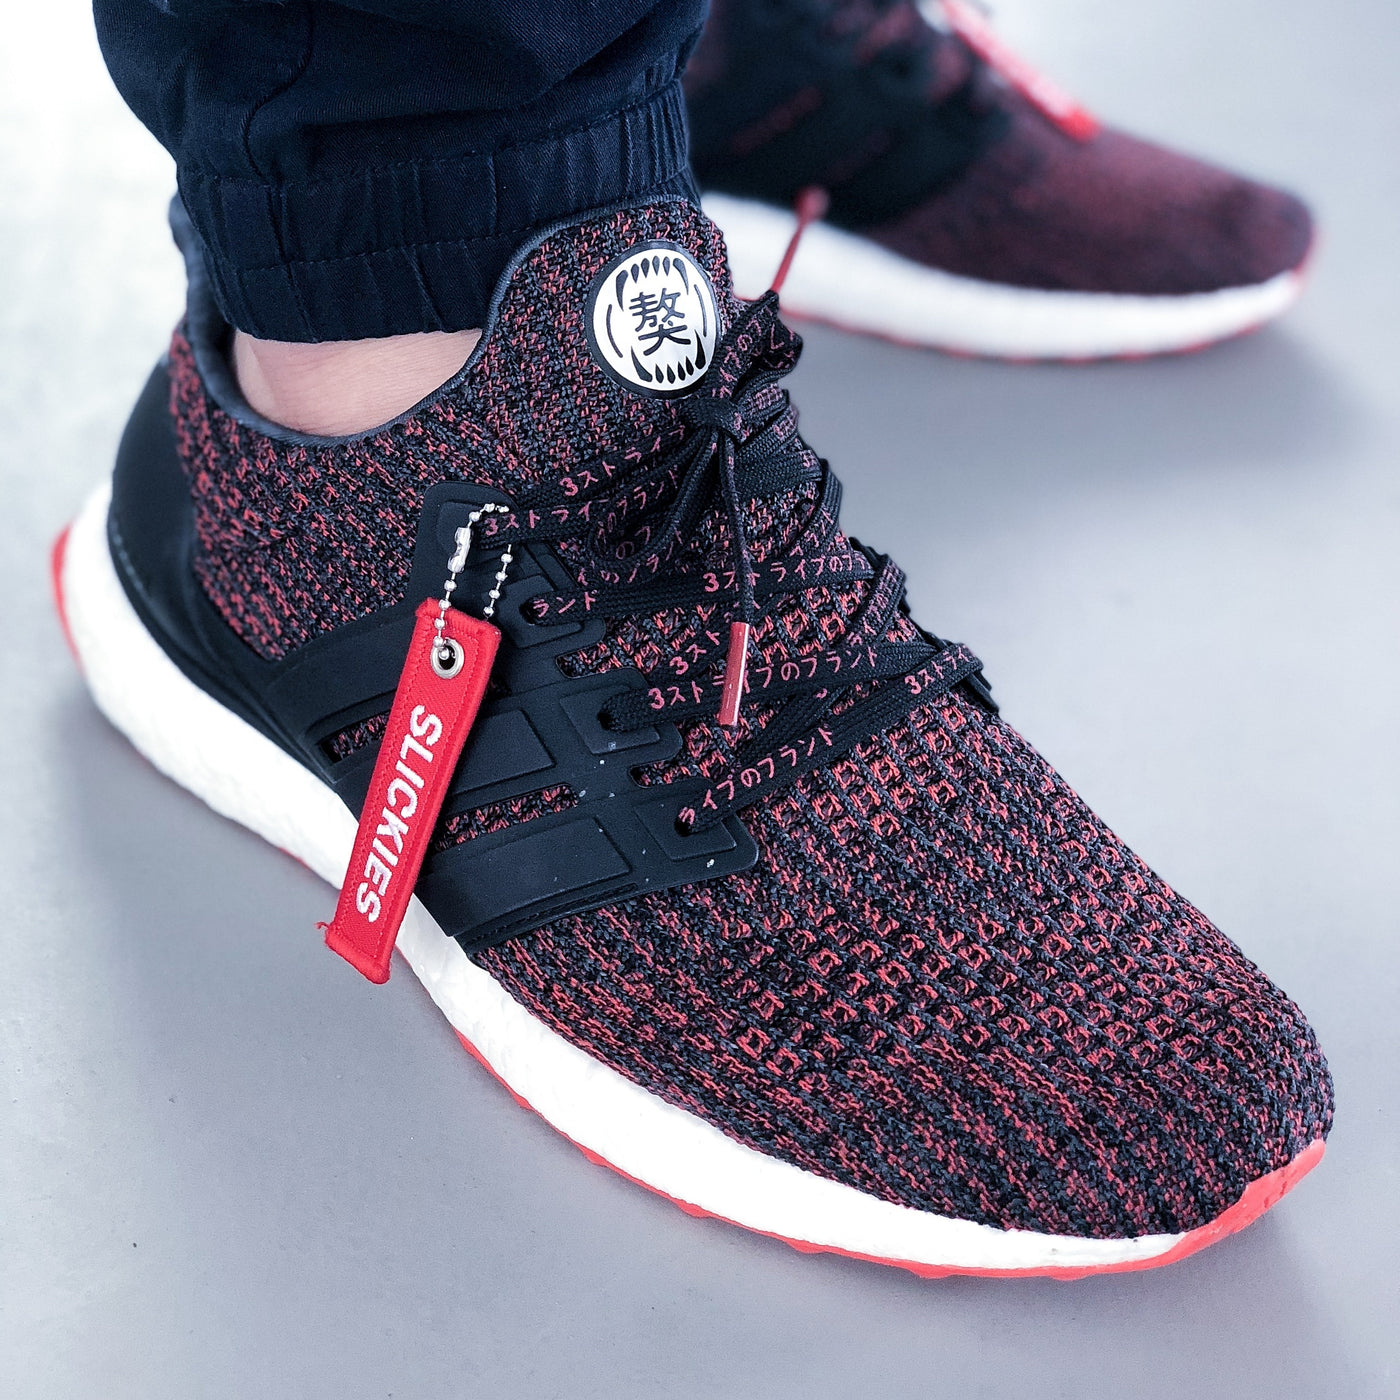 Slickieslaces Shoelaces for Your Ultra Boost NMD Sneakers